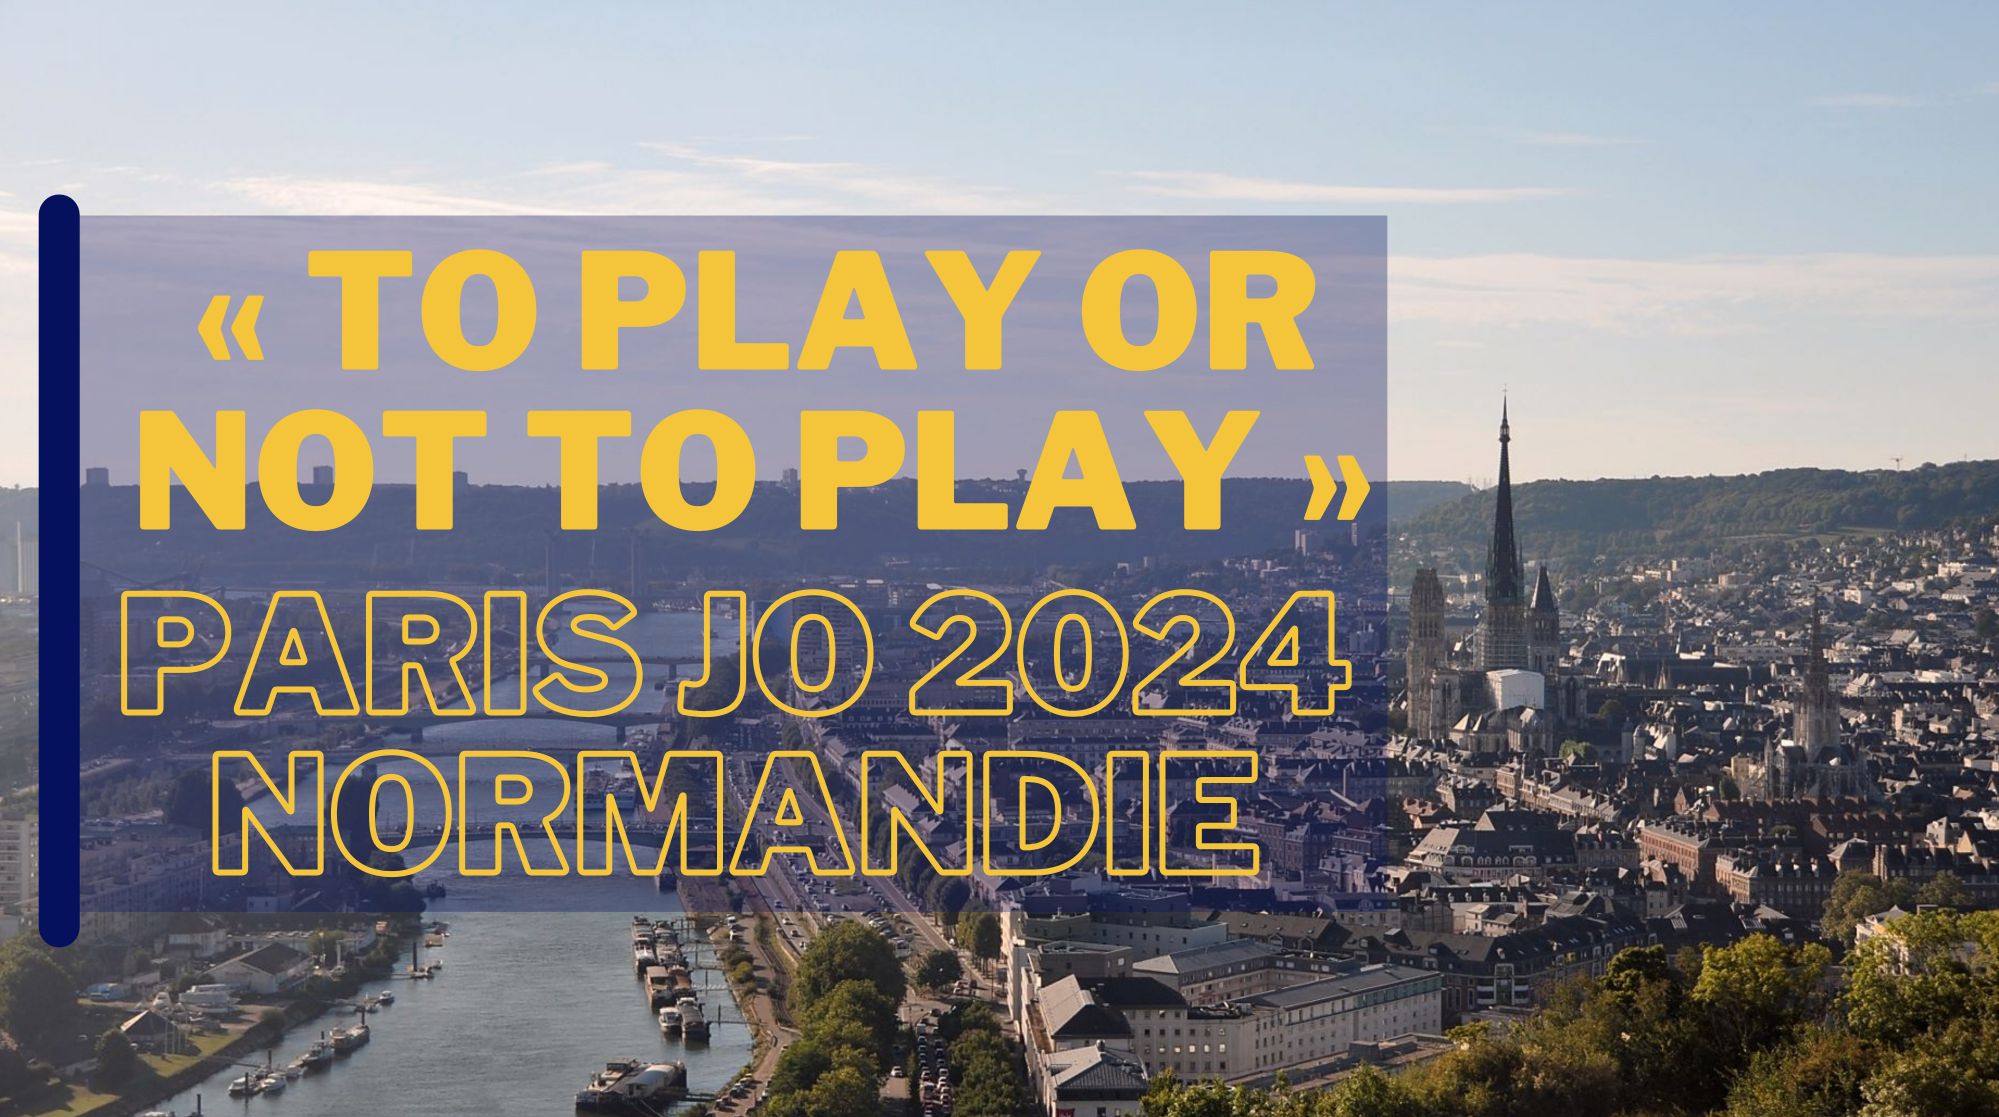 «To play or not to play» : PARIS JO 2024 Normandie